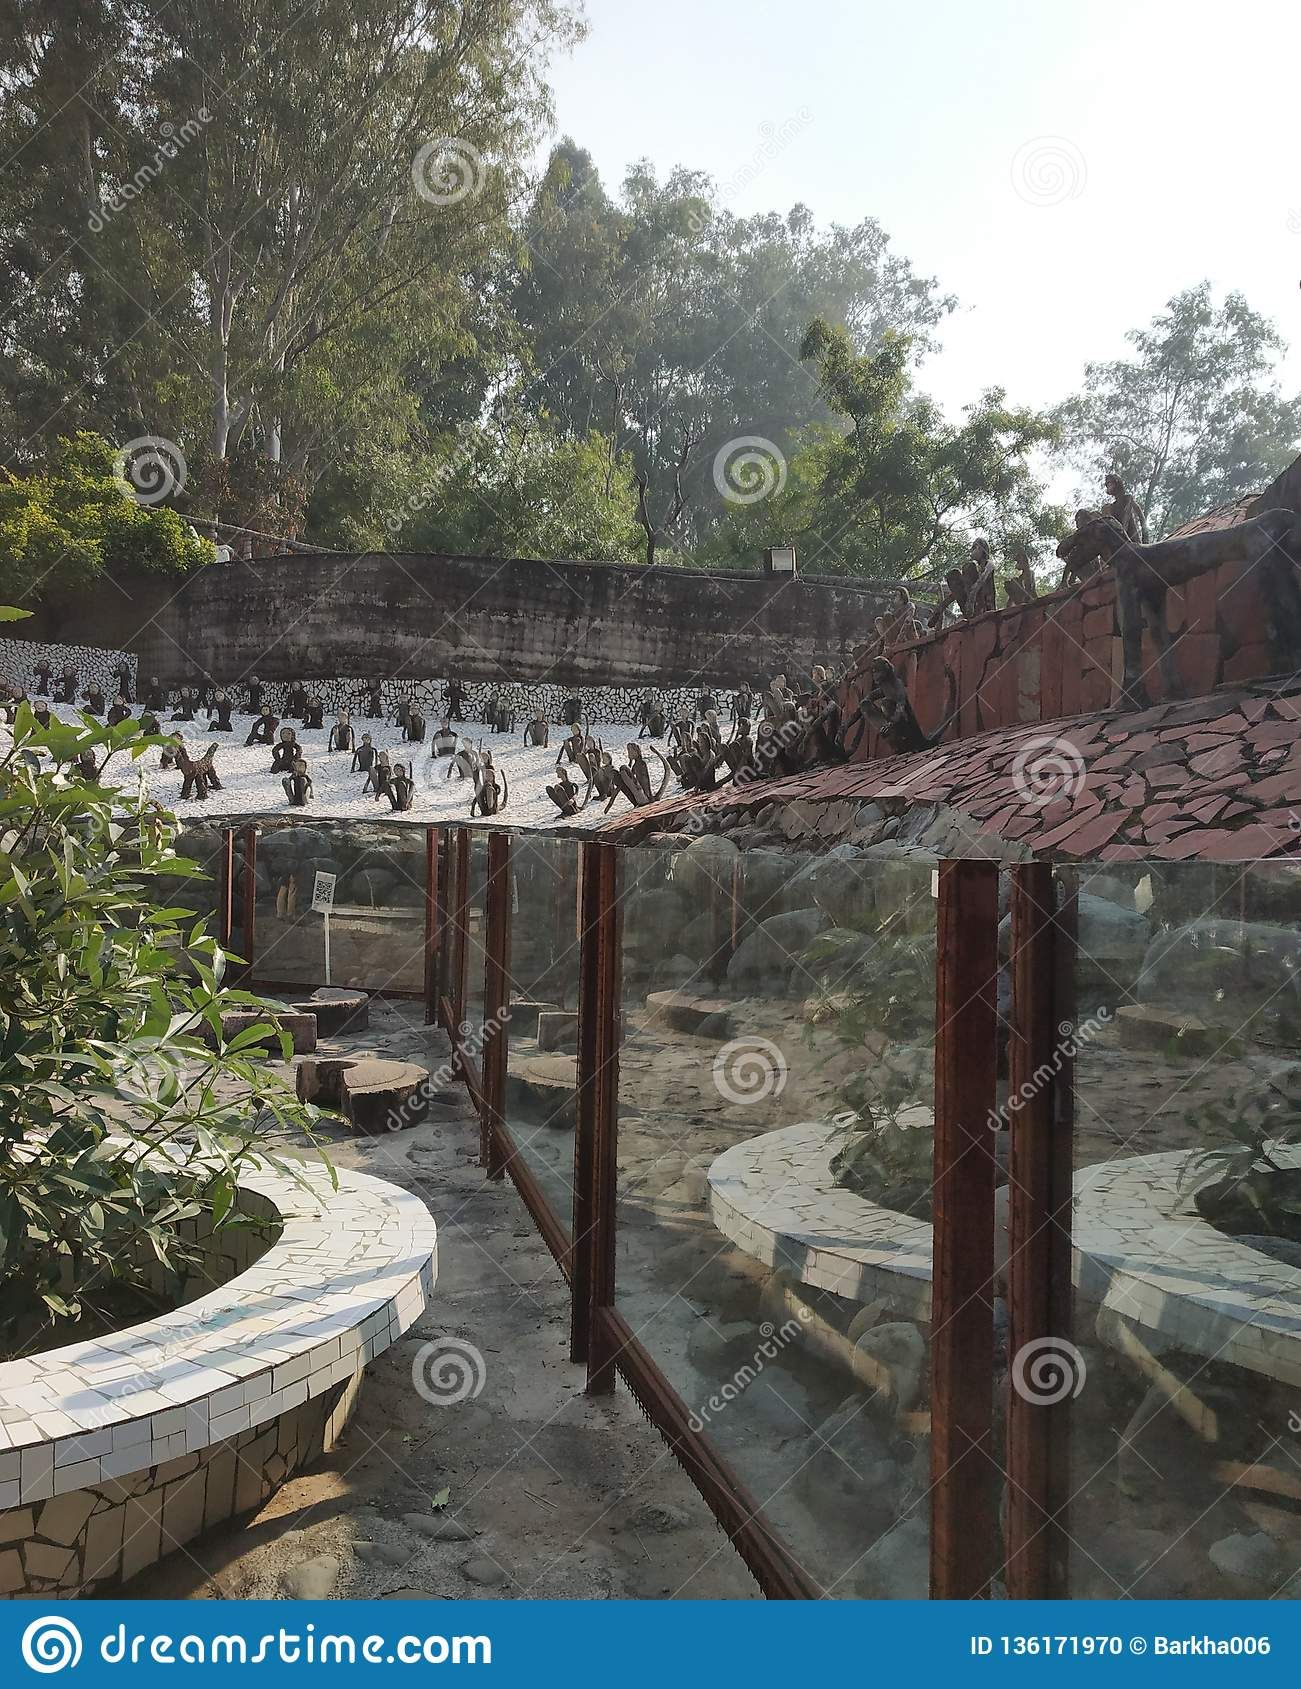 39 Amazing Rock Garden Chandigarh To Save Your Important Stuffs